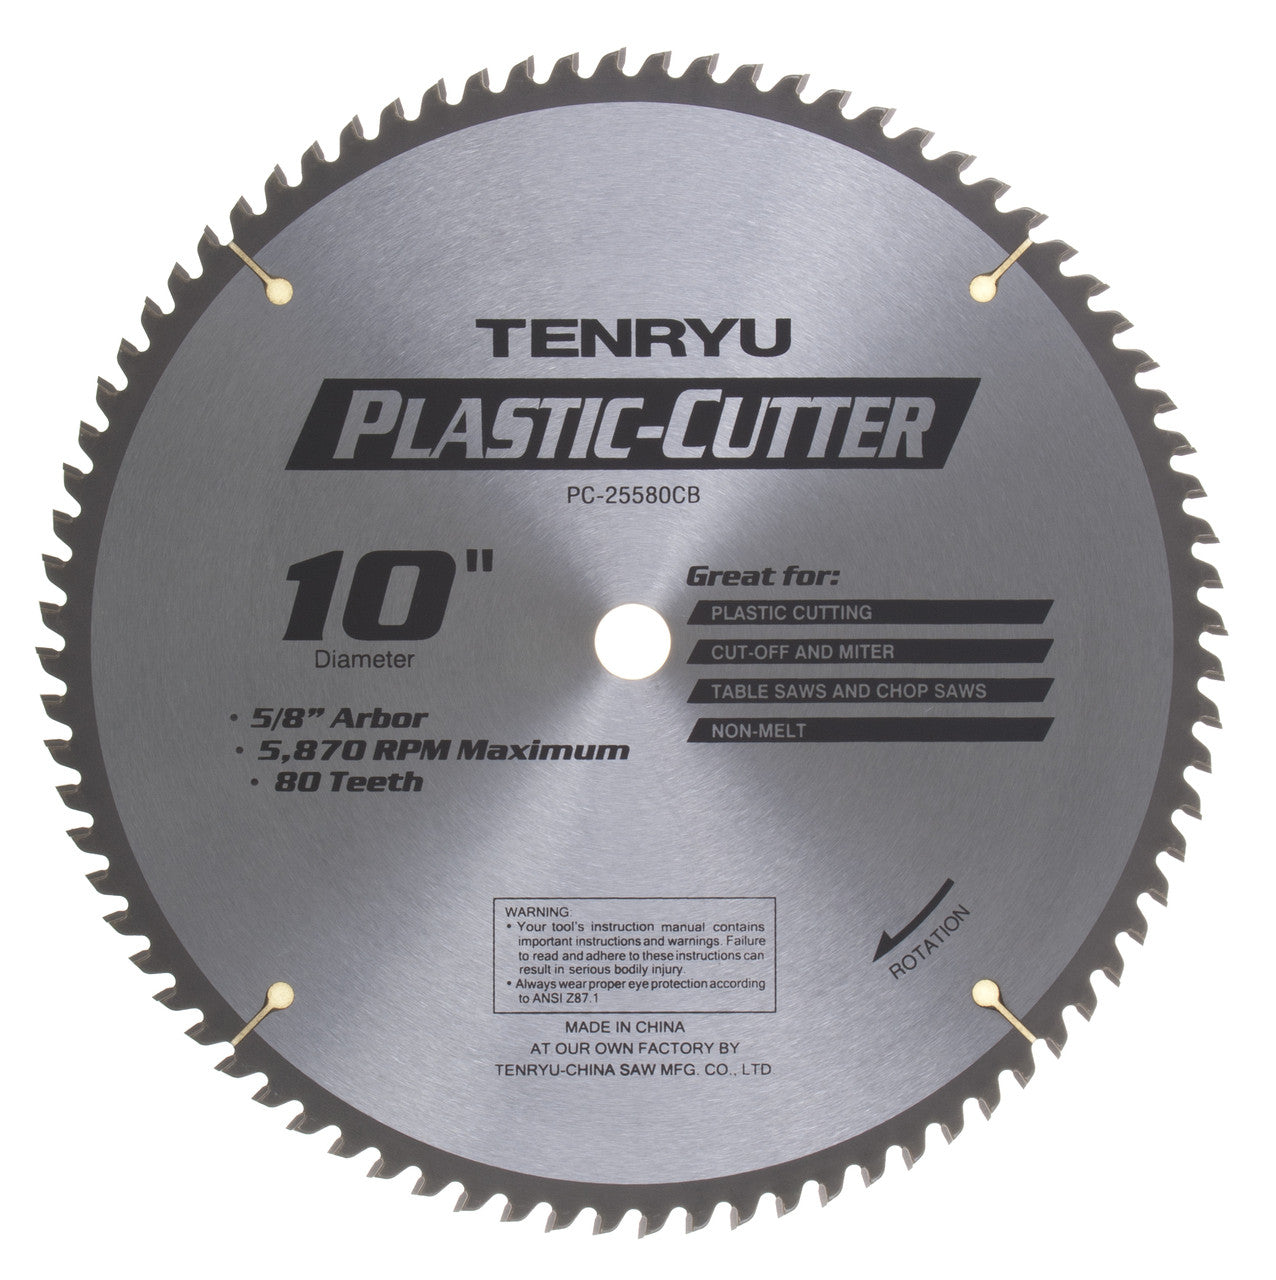 Plastic Cutter Series